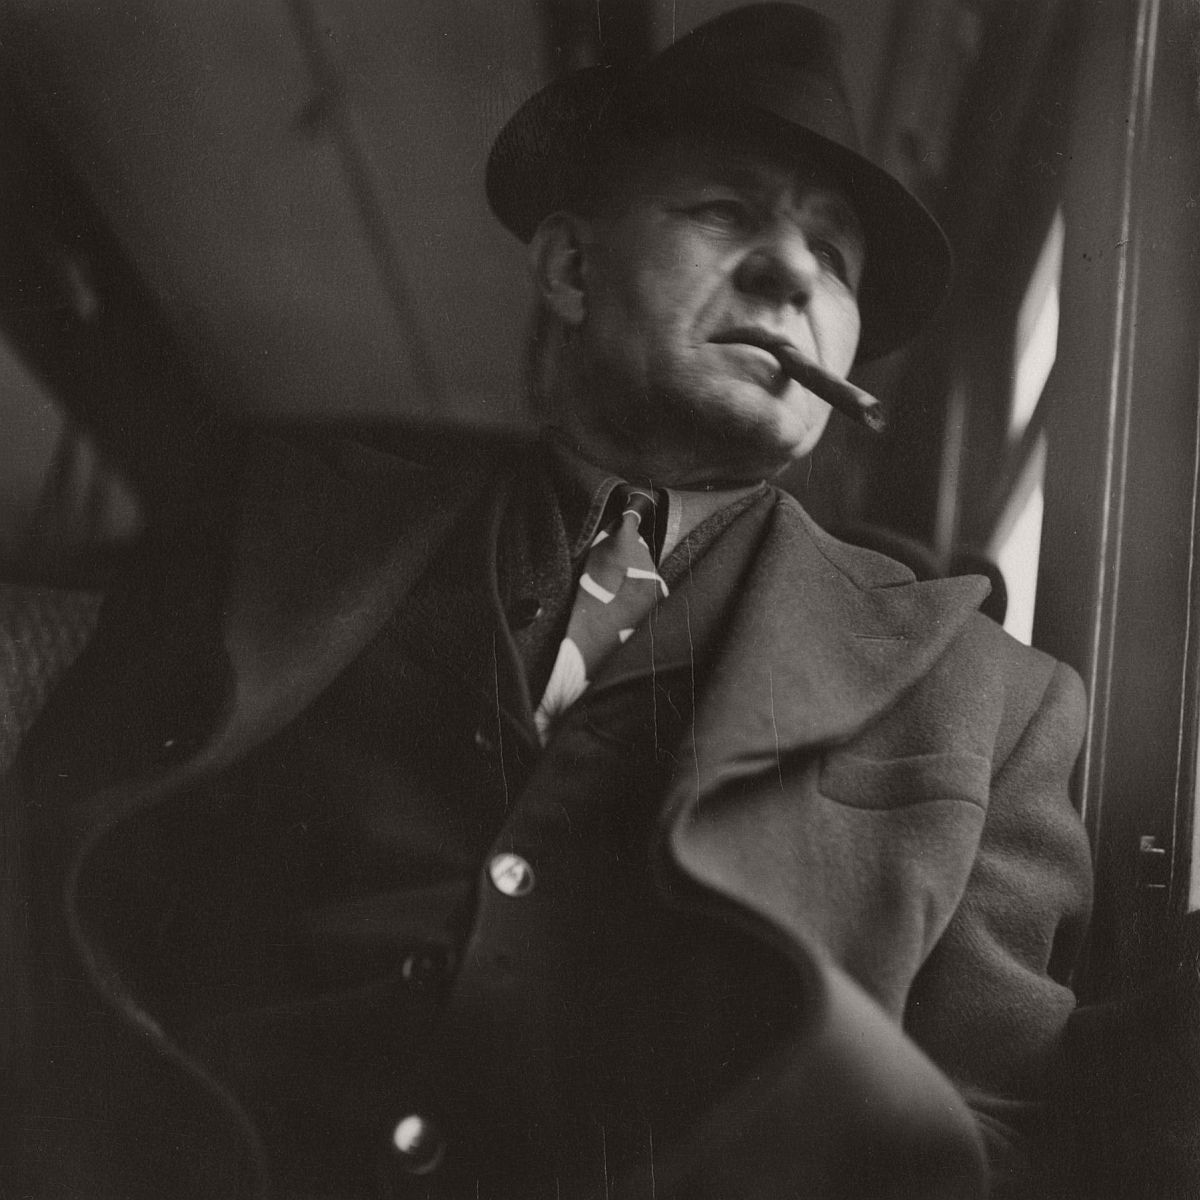 Man with Cigar, 1948